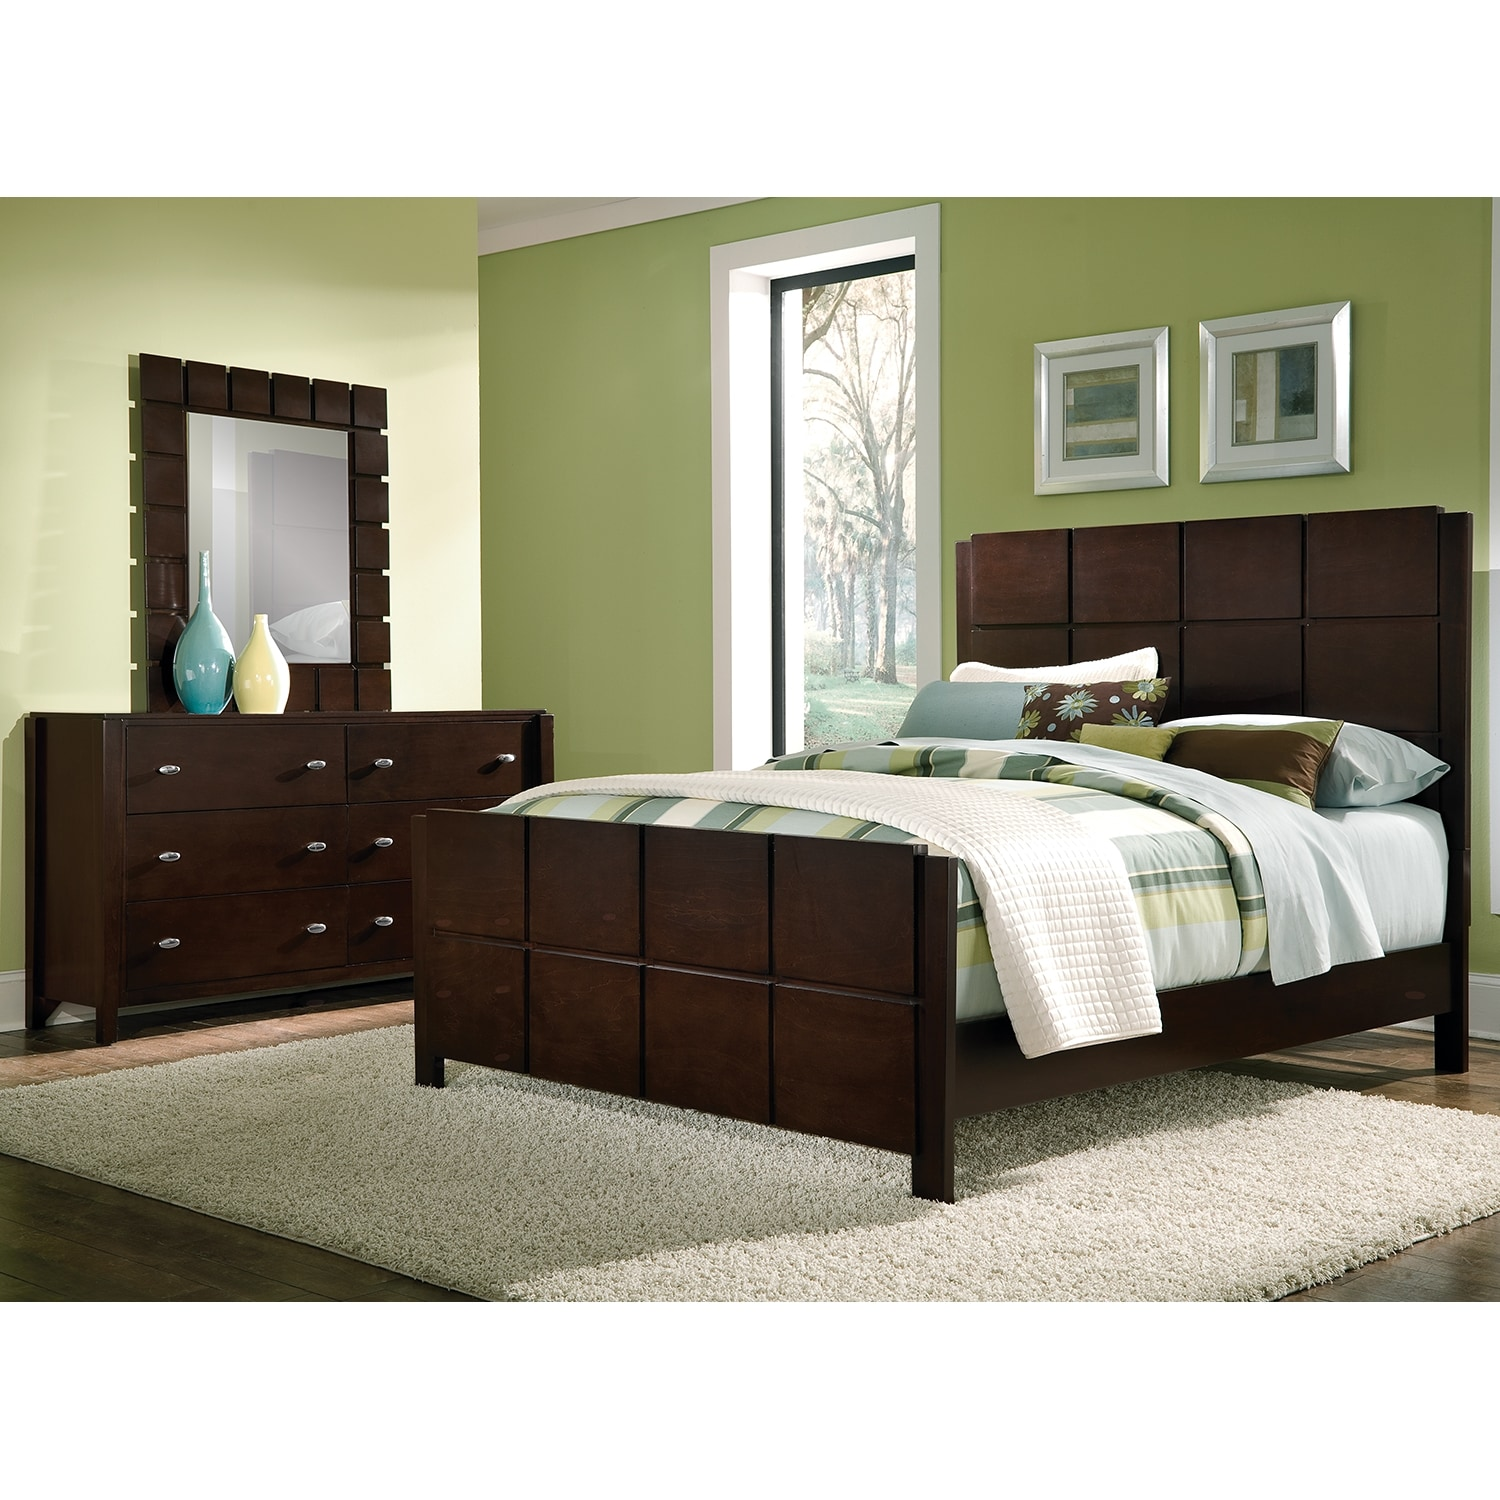 Mosaic 5 piece king bedroom set dark brown american for Bed and bedroom sets